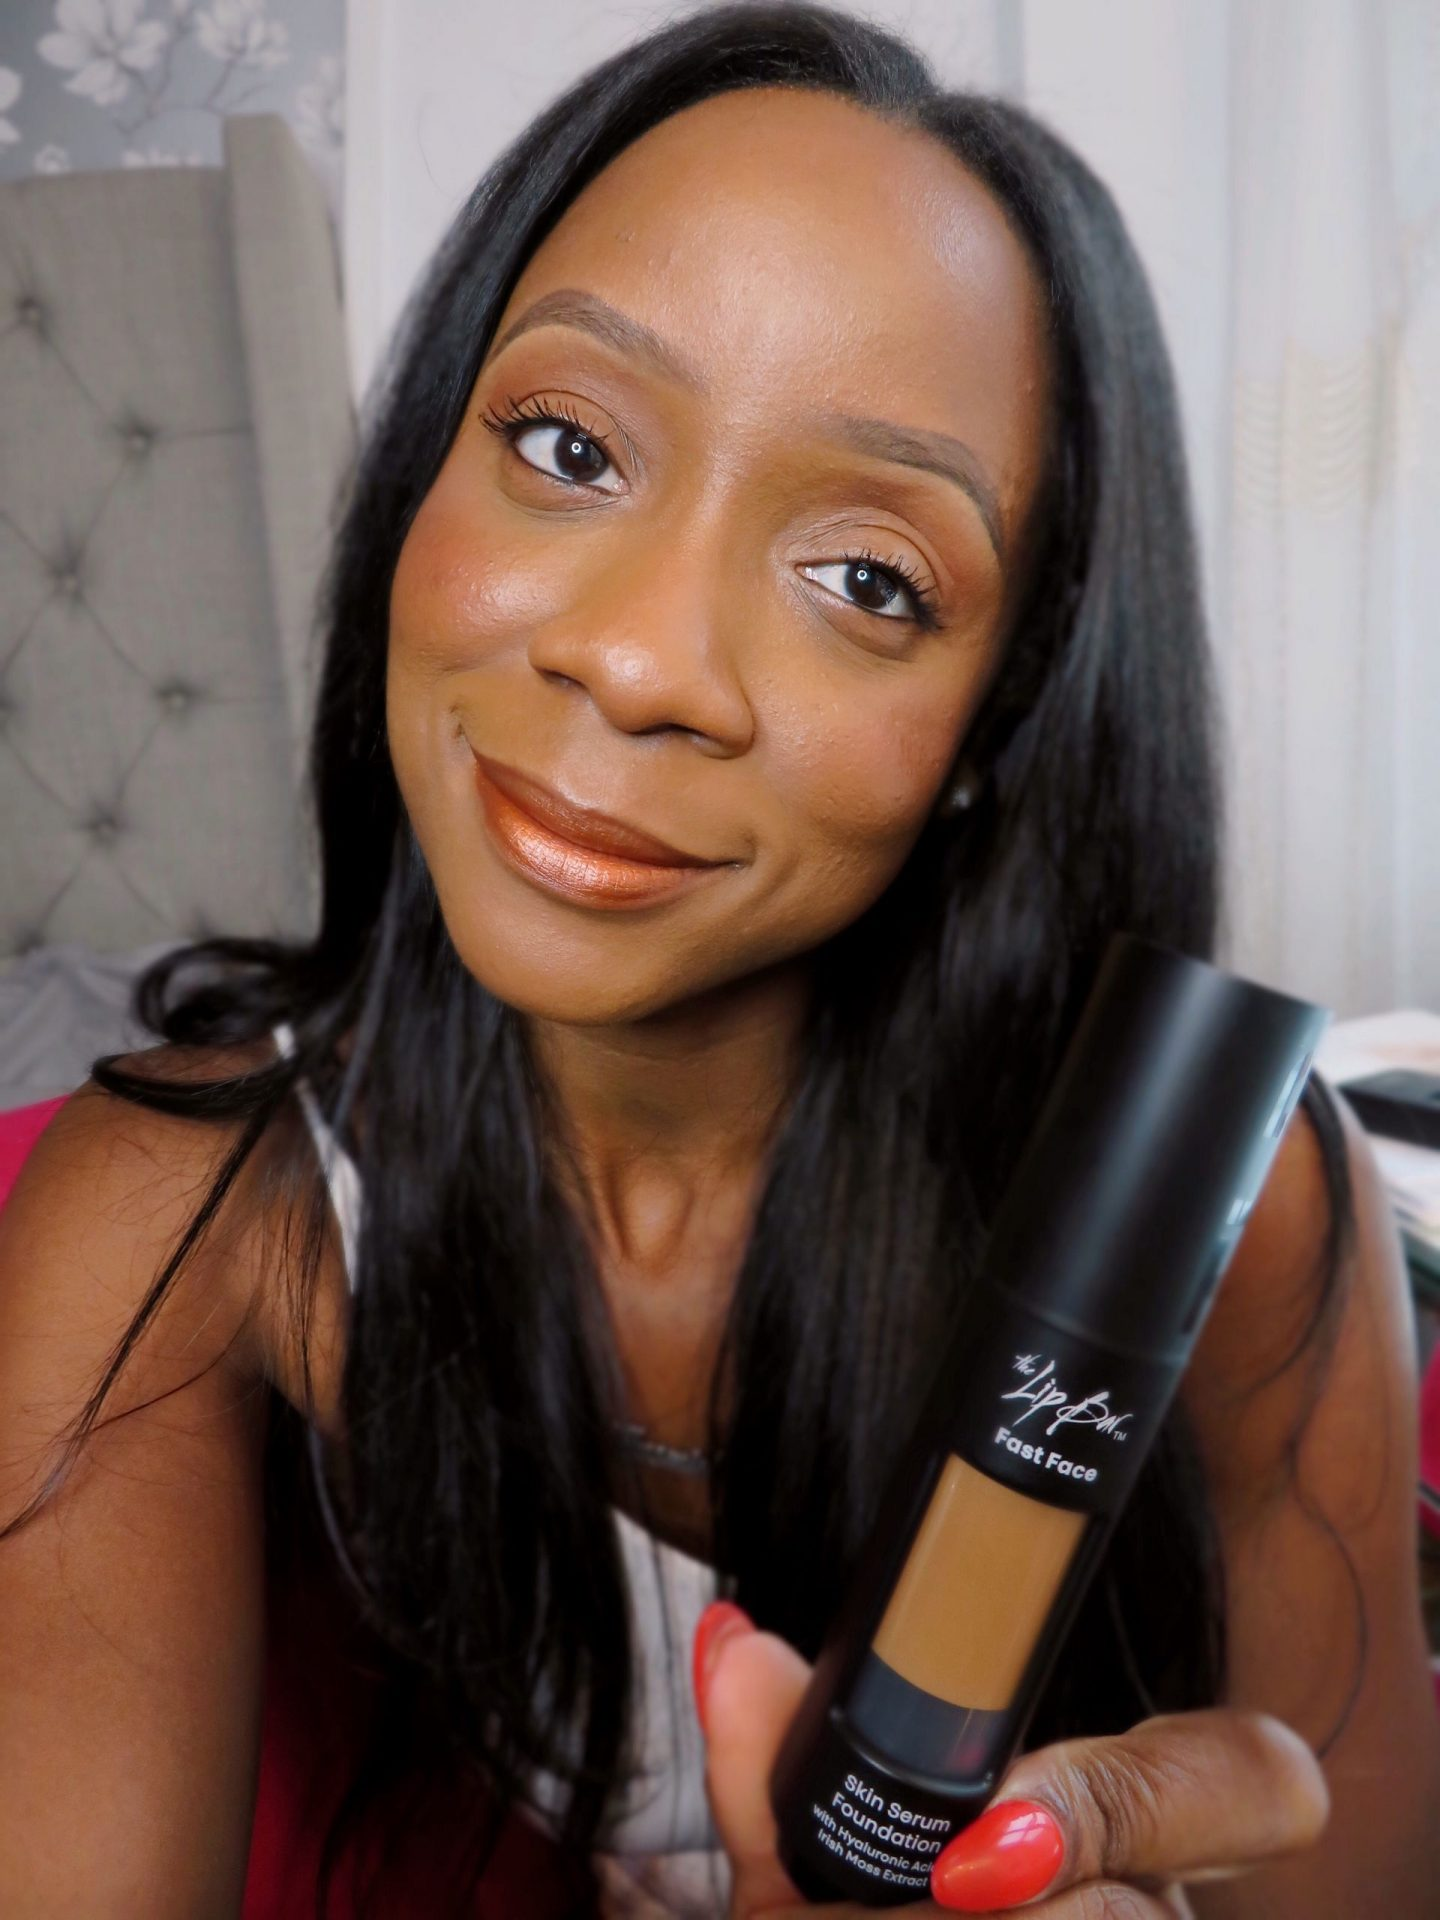 #FoundationTalkTuesday The LipBar Fast Face Serum Foundation Review!